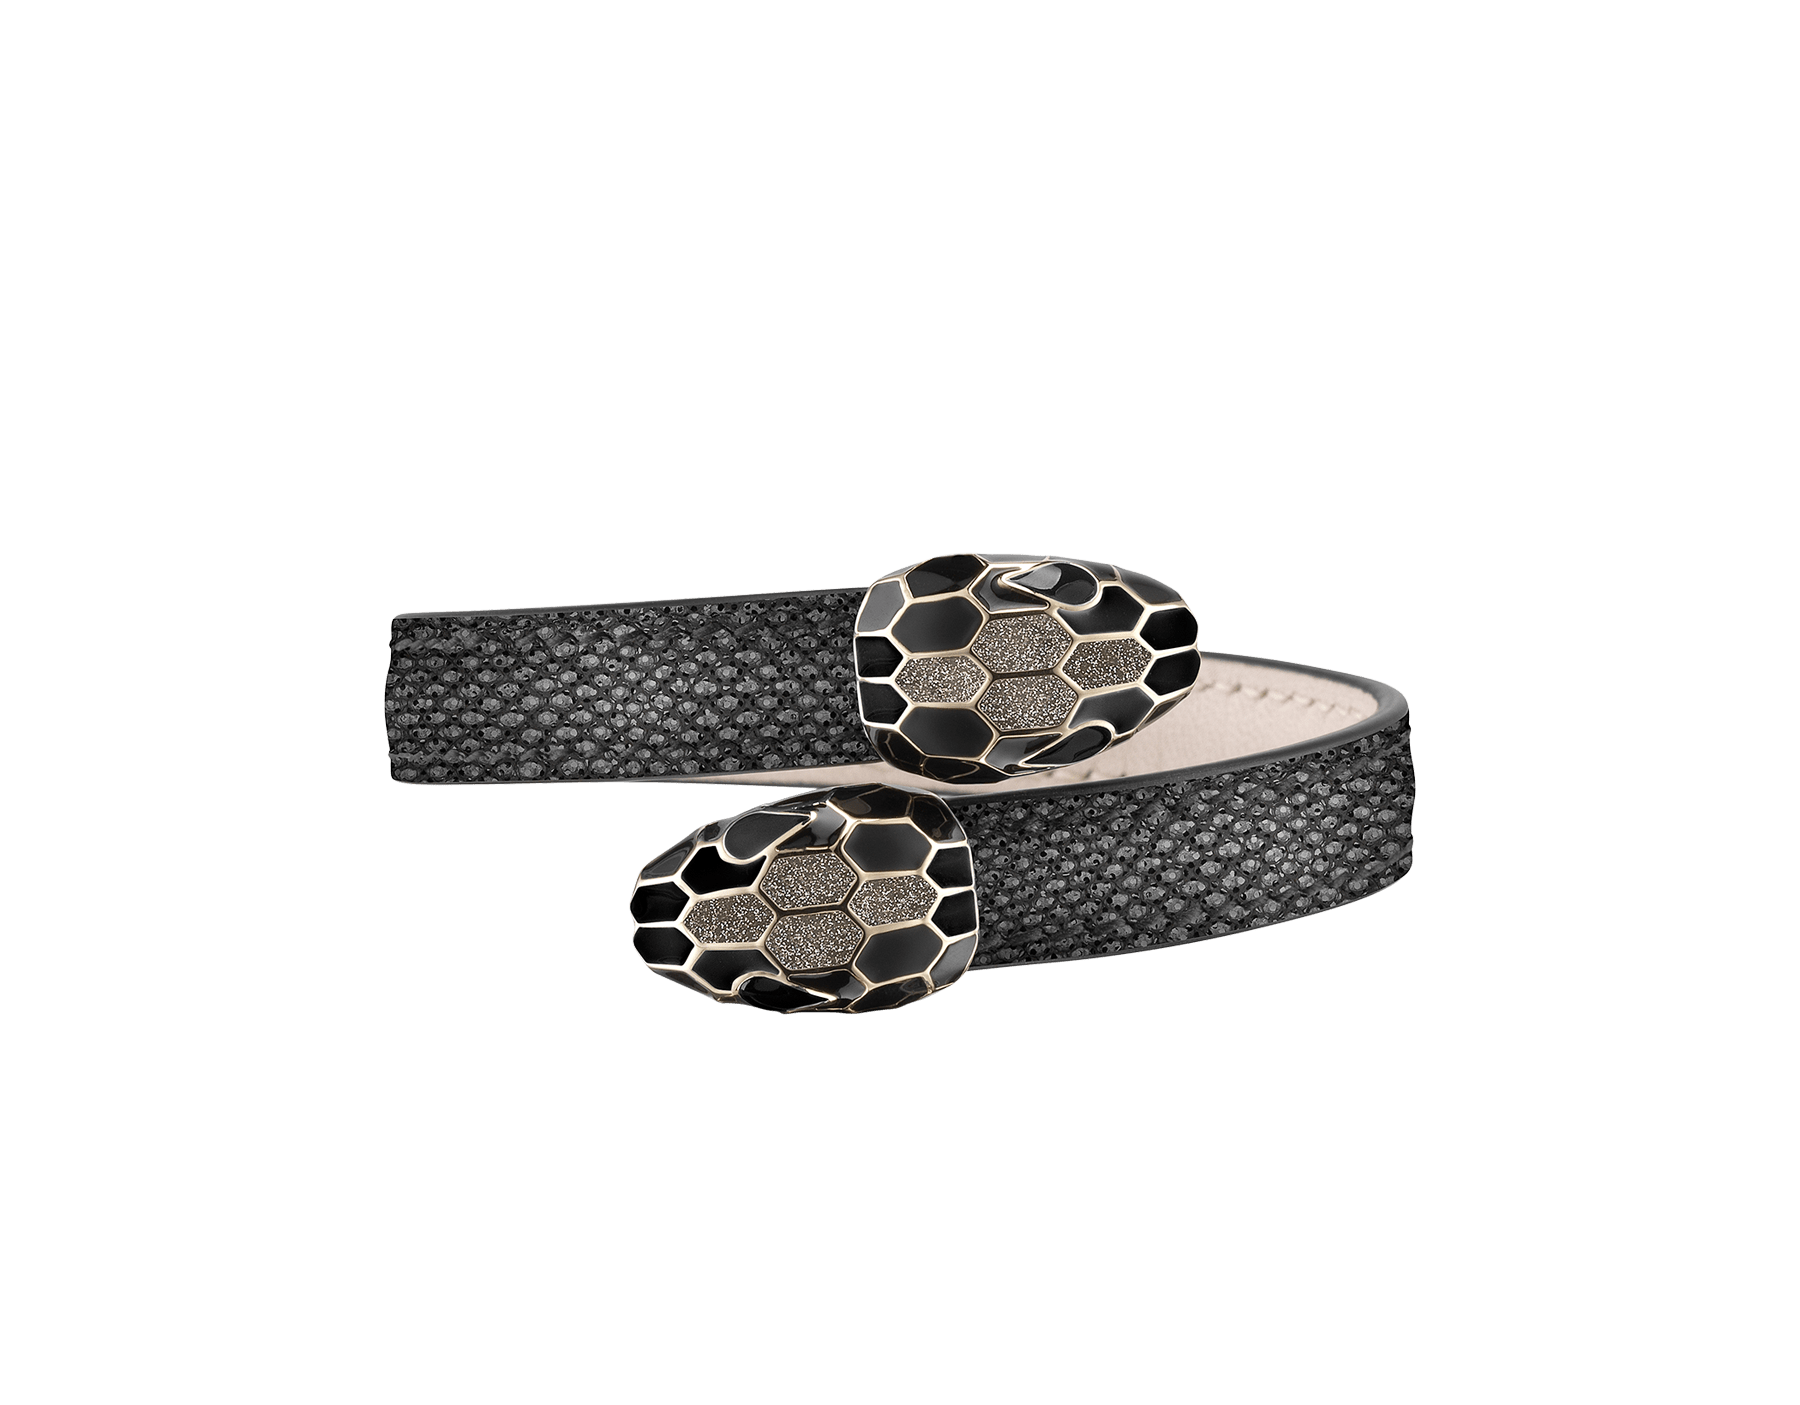 Serpenti Forever soft bangle bracelet in moon silver metallic karung skin, with brass light gold plated hardware. Iconic contraire snakehead décor in black and white enamel, with green enamel eyes SerpSoftContr-MK-MS image 1